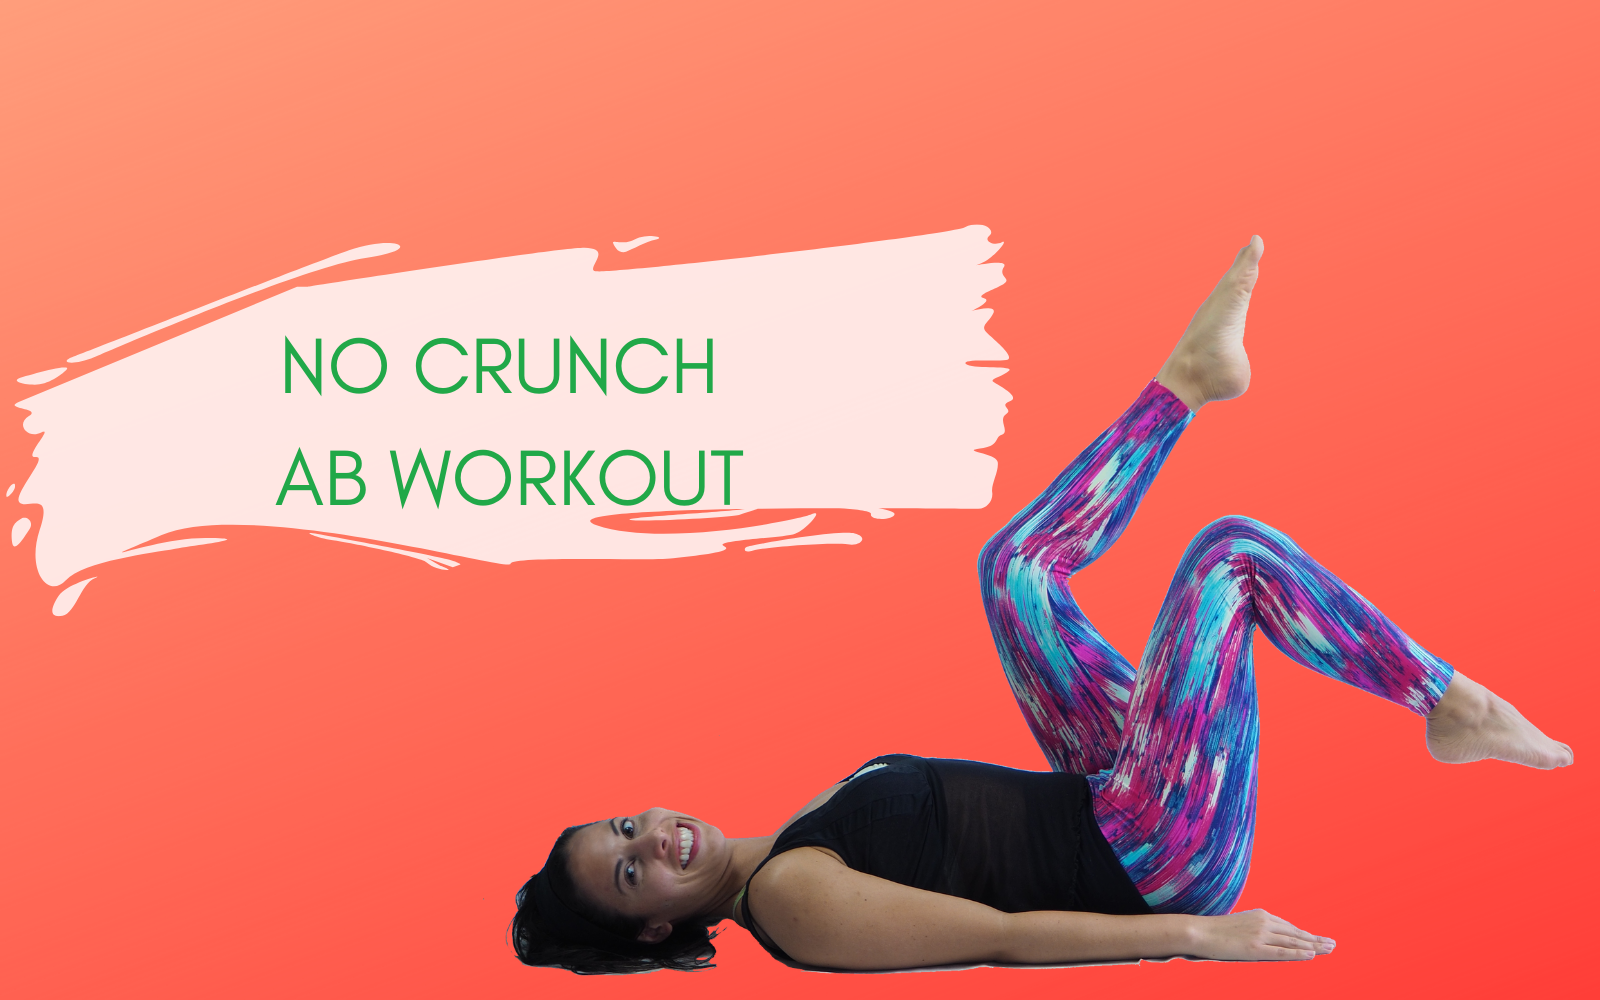 No Crunch Ab Workout: Flat Stomach Exercises